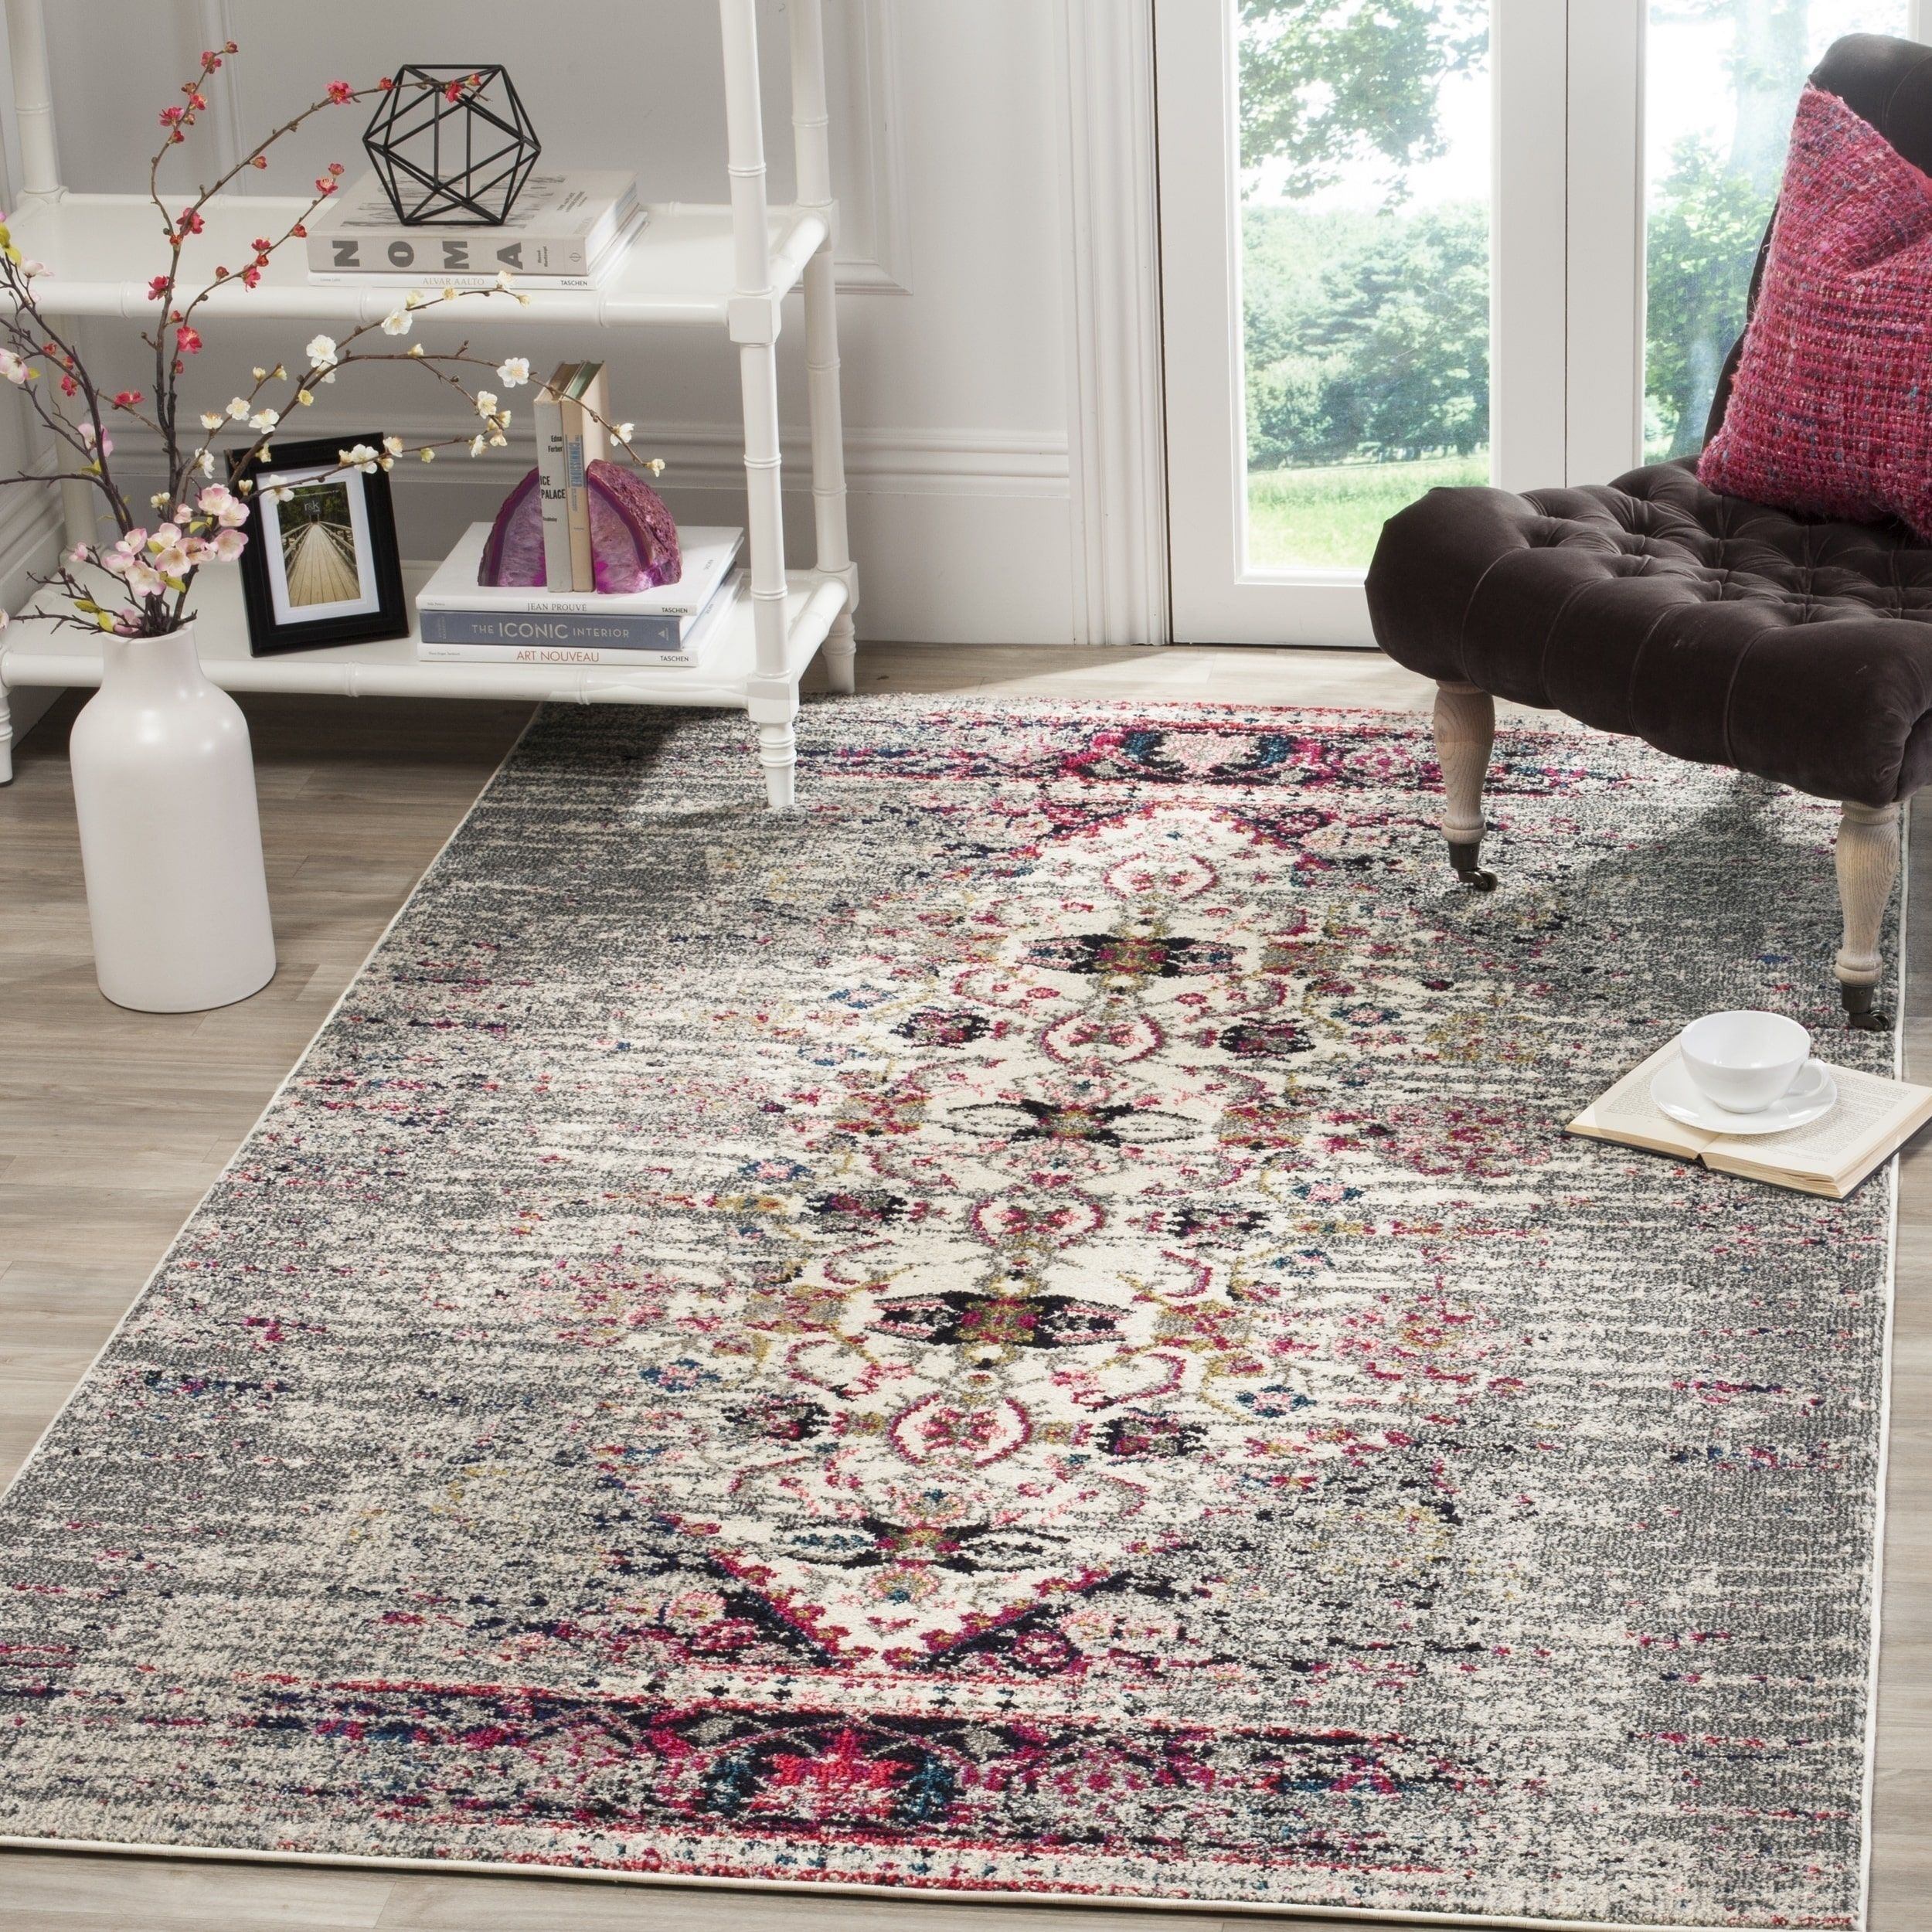 Living Room  3x5 Rugs - a68bab383ddb3db68bad5fa765f2a69c_Simple Living Room  3x5 Rugs - a68bab383ddb3db68bad5fa765f2a69c  Collection_201122.jpg